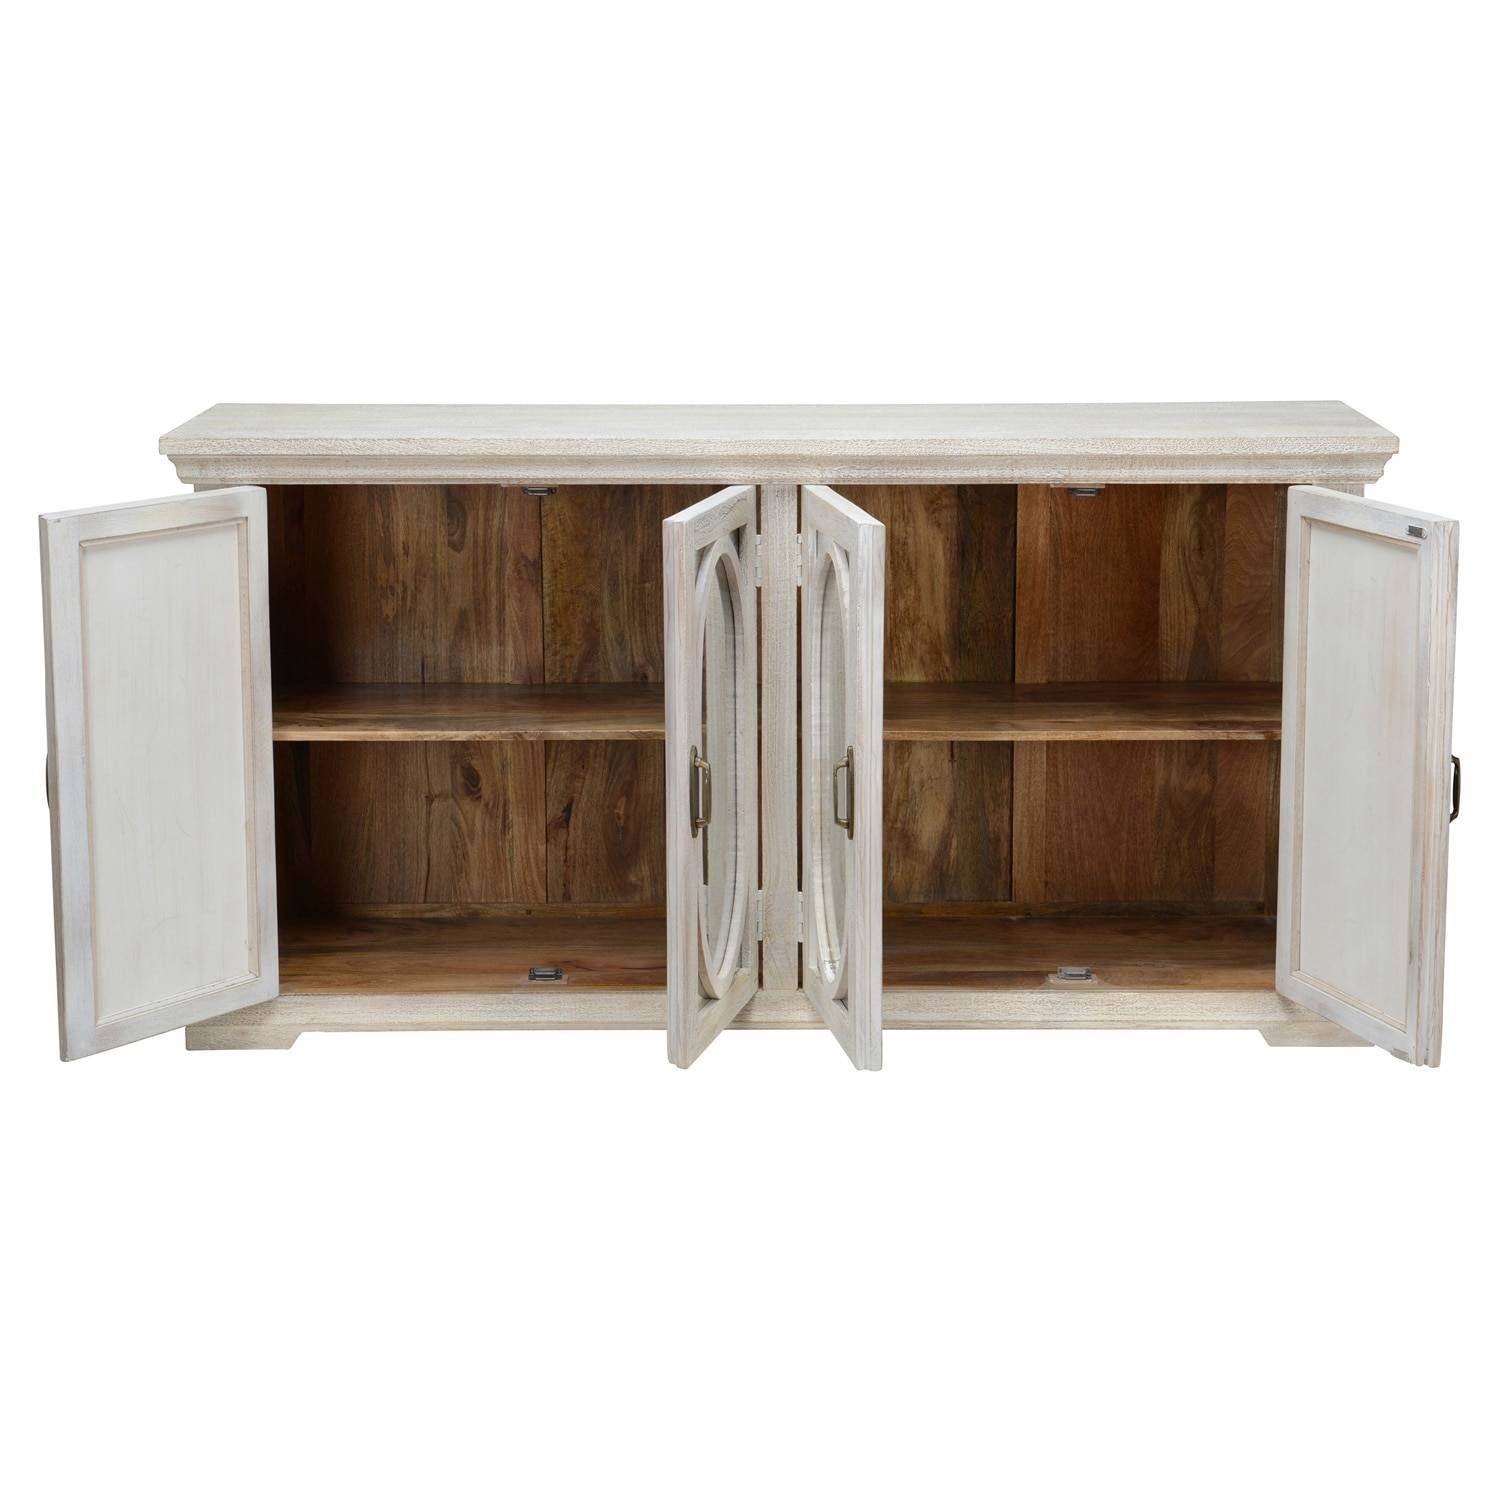 Manchester Wood Mirrored 70 Inch Sideboardkosas Home – Free Within Most Up To Date 70 Inch Sideboards (#11 of 15)